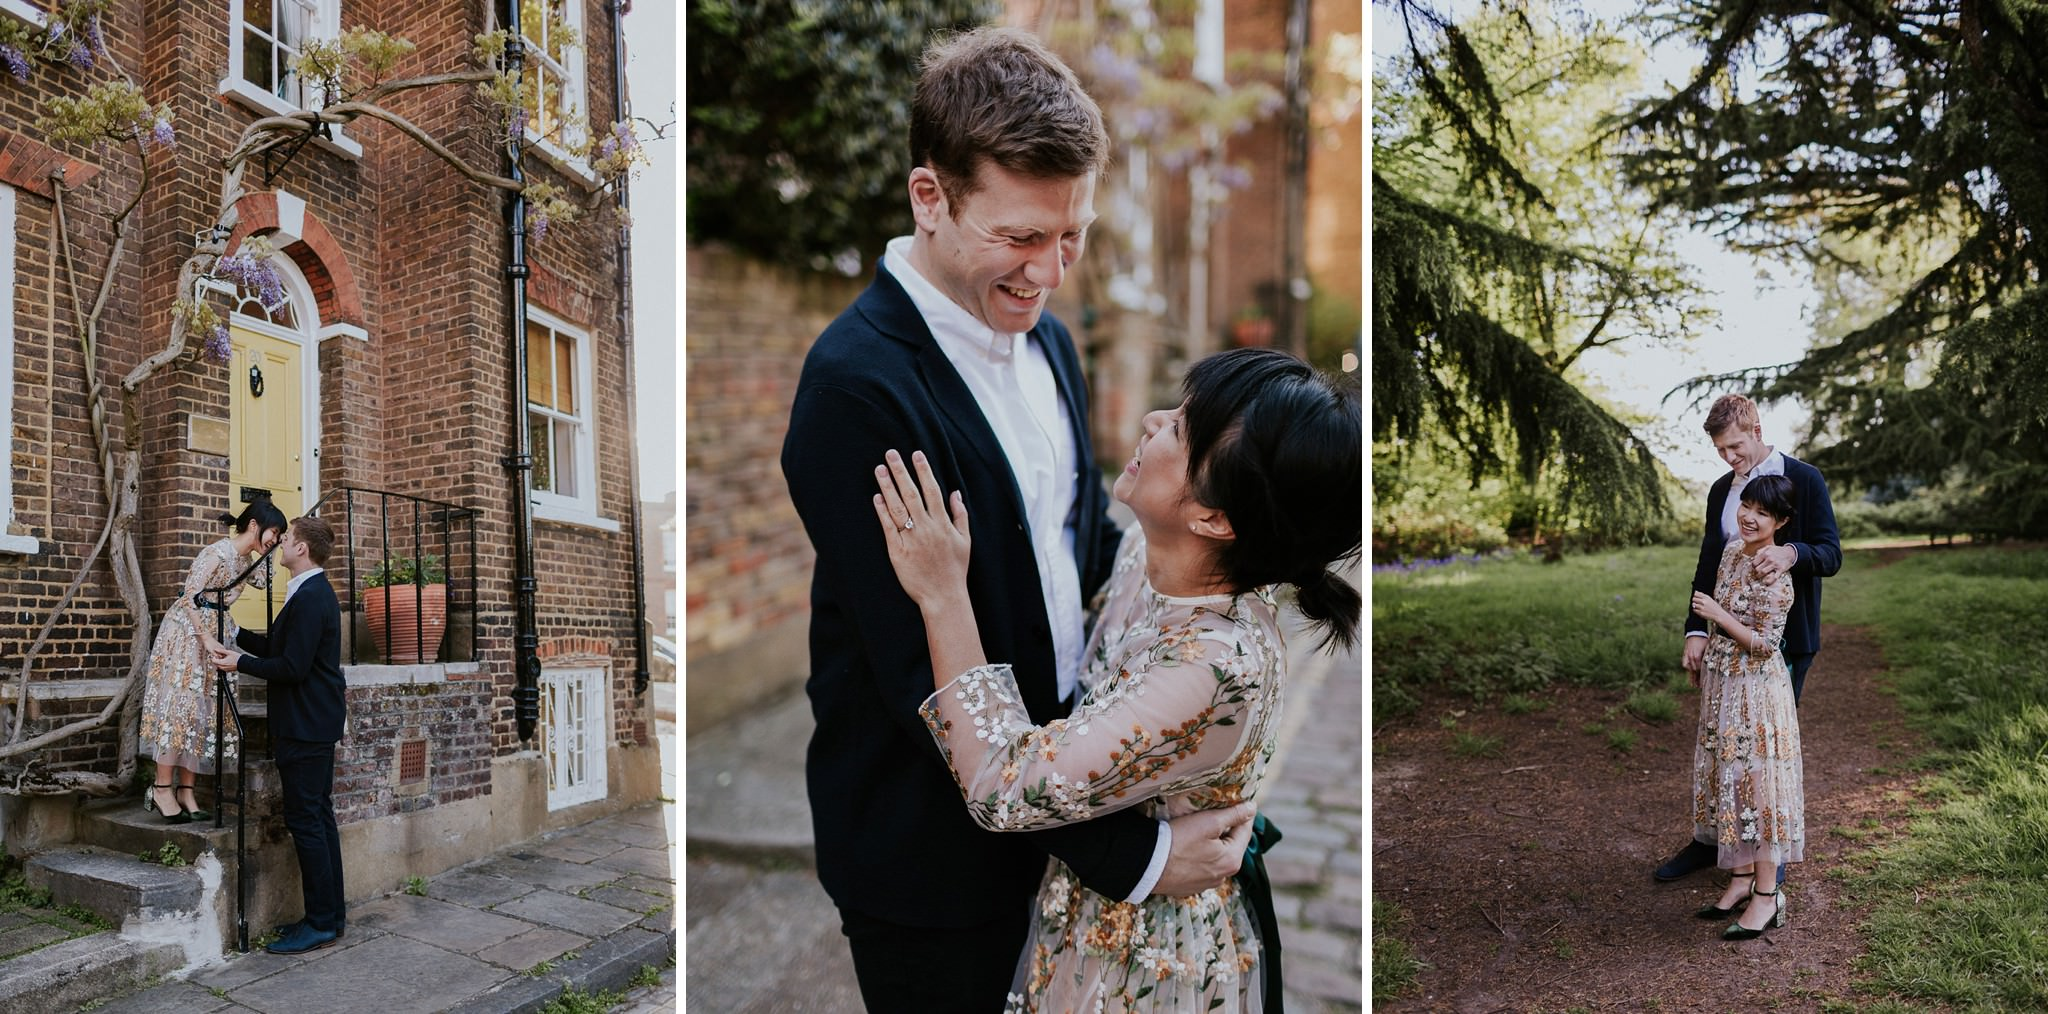 Couple engagement photos in Hampstead